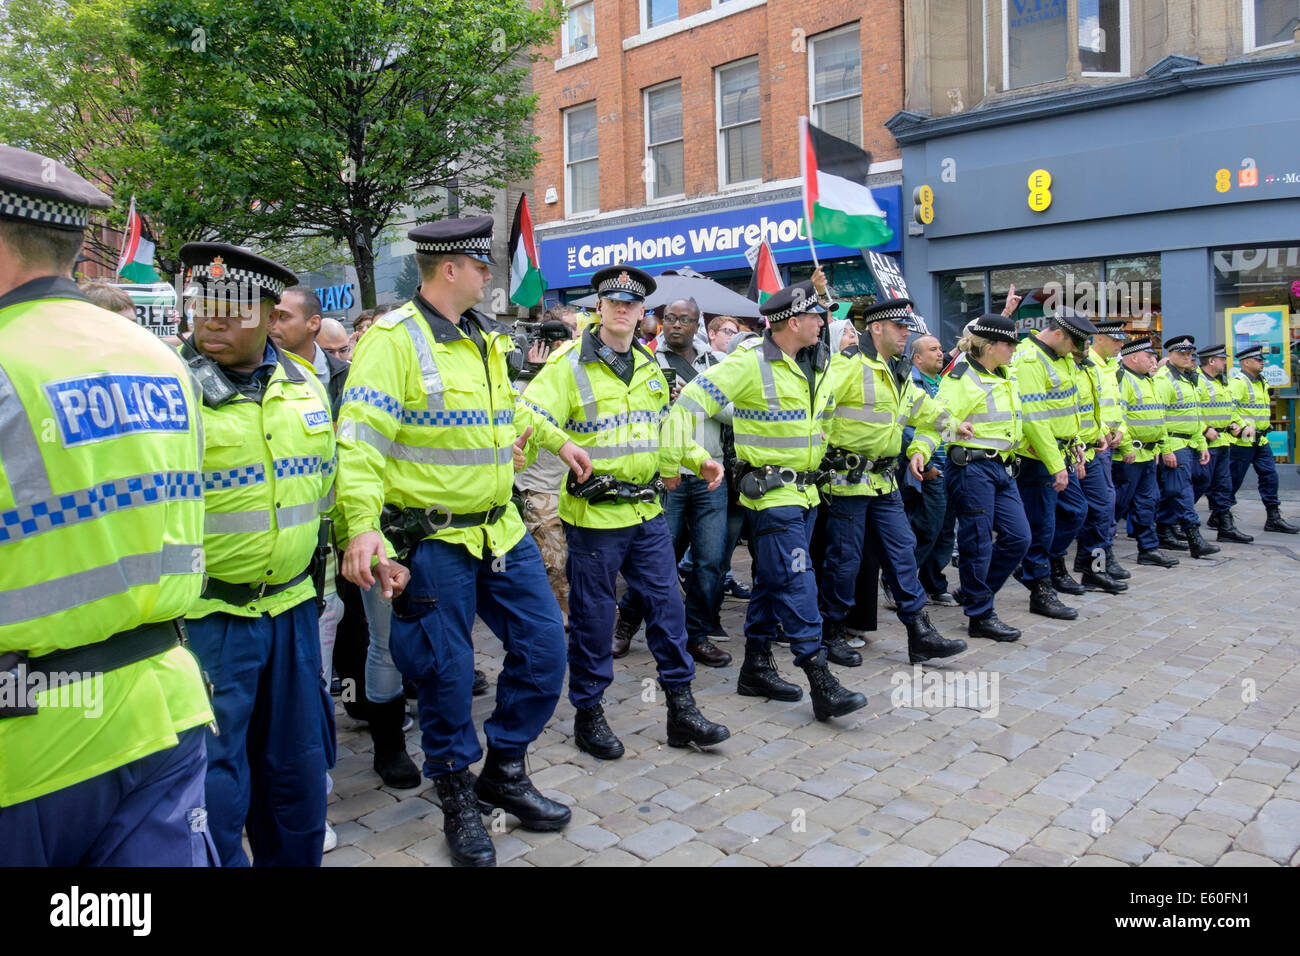 Manchester, UK. 9th August 2014. Police cordon the hundreds of pro-Palestinian demonstrators marching in Market - Stock Image